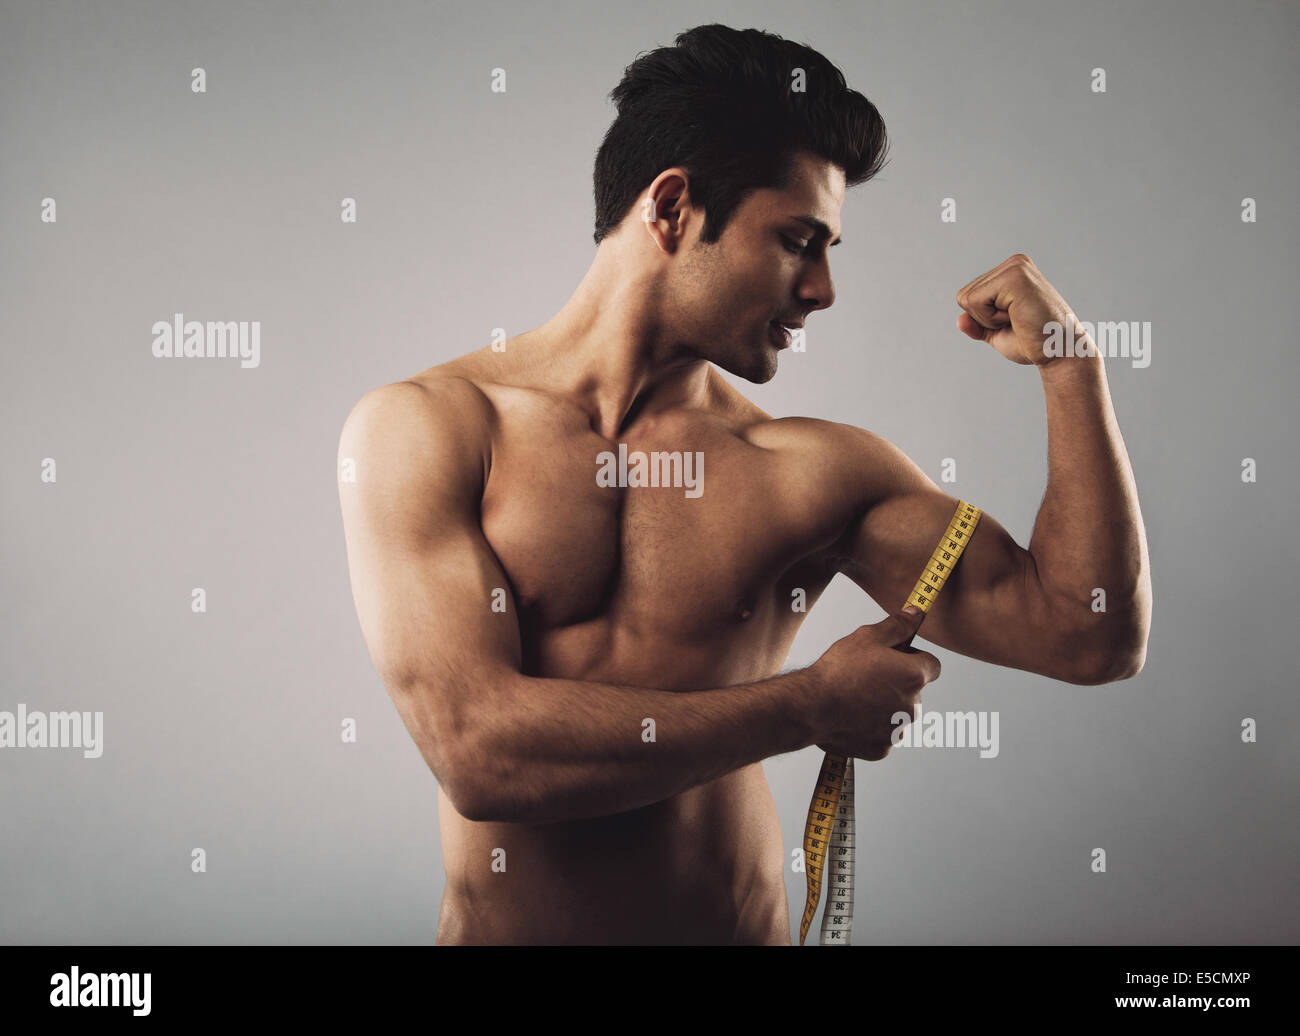 Fitness man measuring his body. Muscular male measuring biceps by tape measure isolated on grey background. - Stock Image